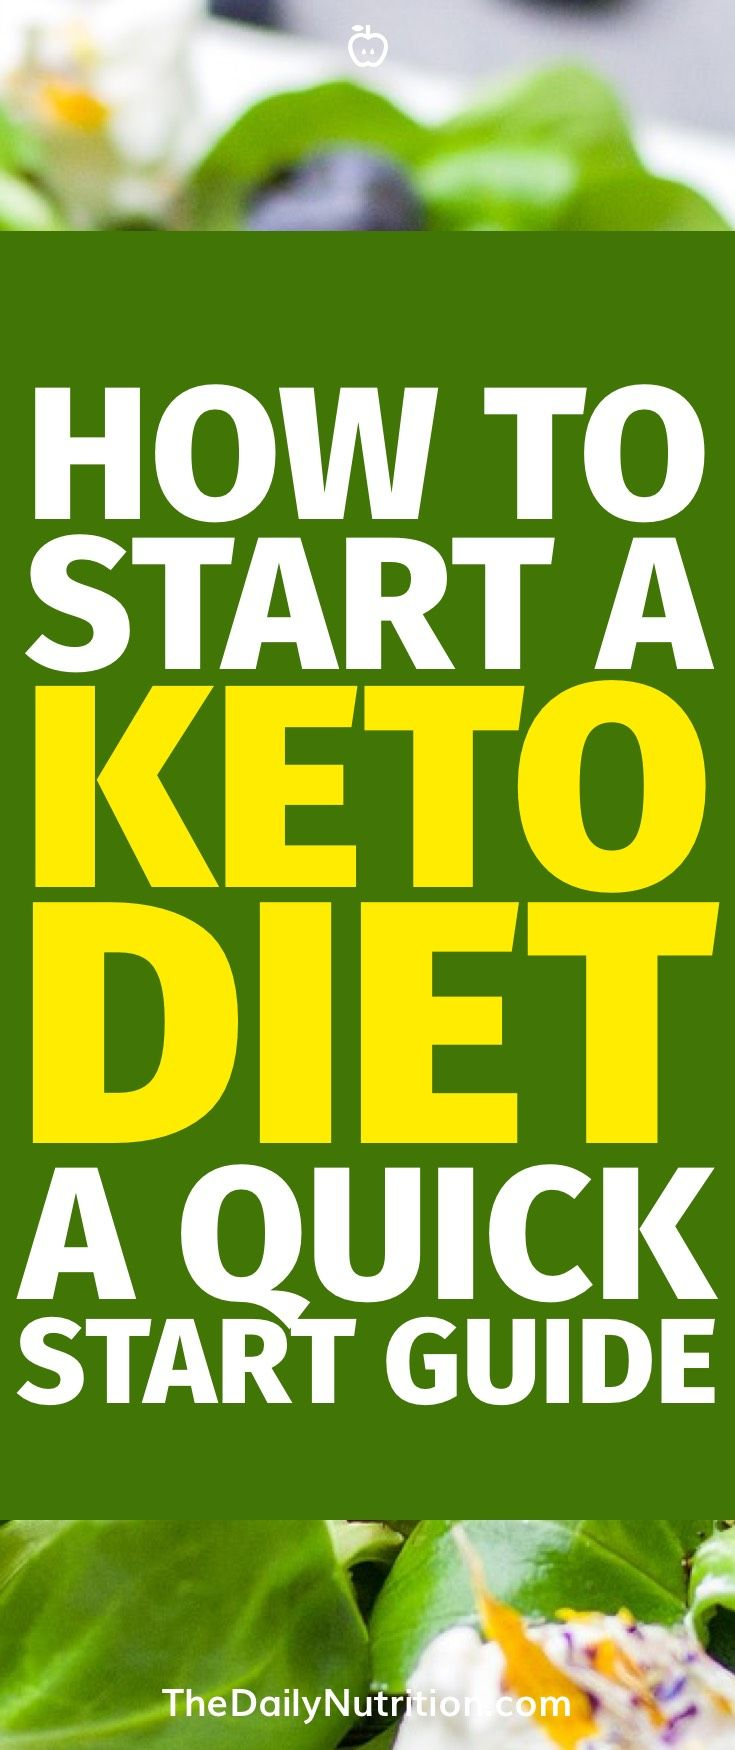 How to start keto diet successfully